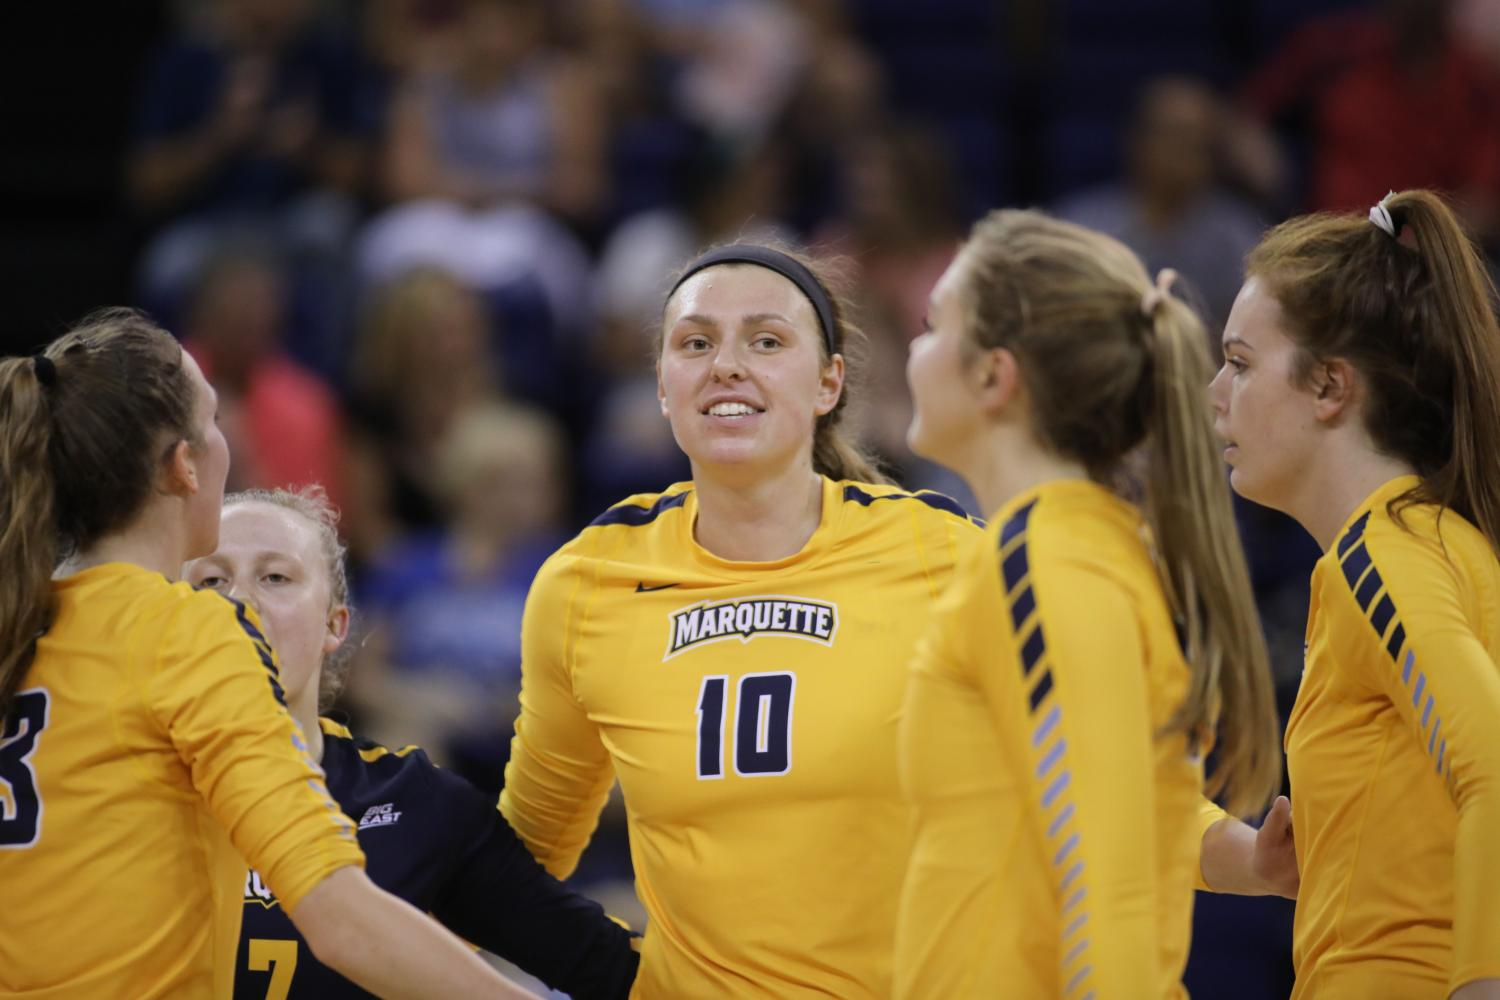 Allie Barber smashed 21 kills in Marquette's three-set win over No. 12 Creighton.